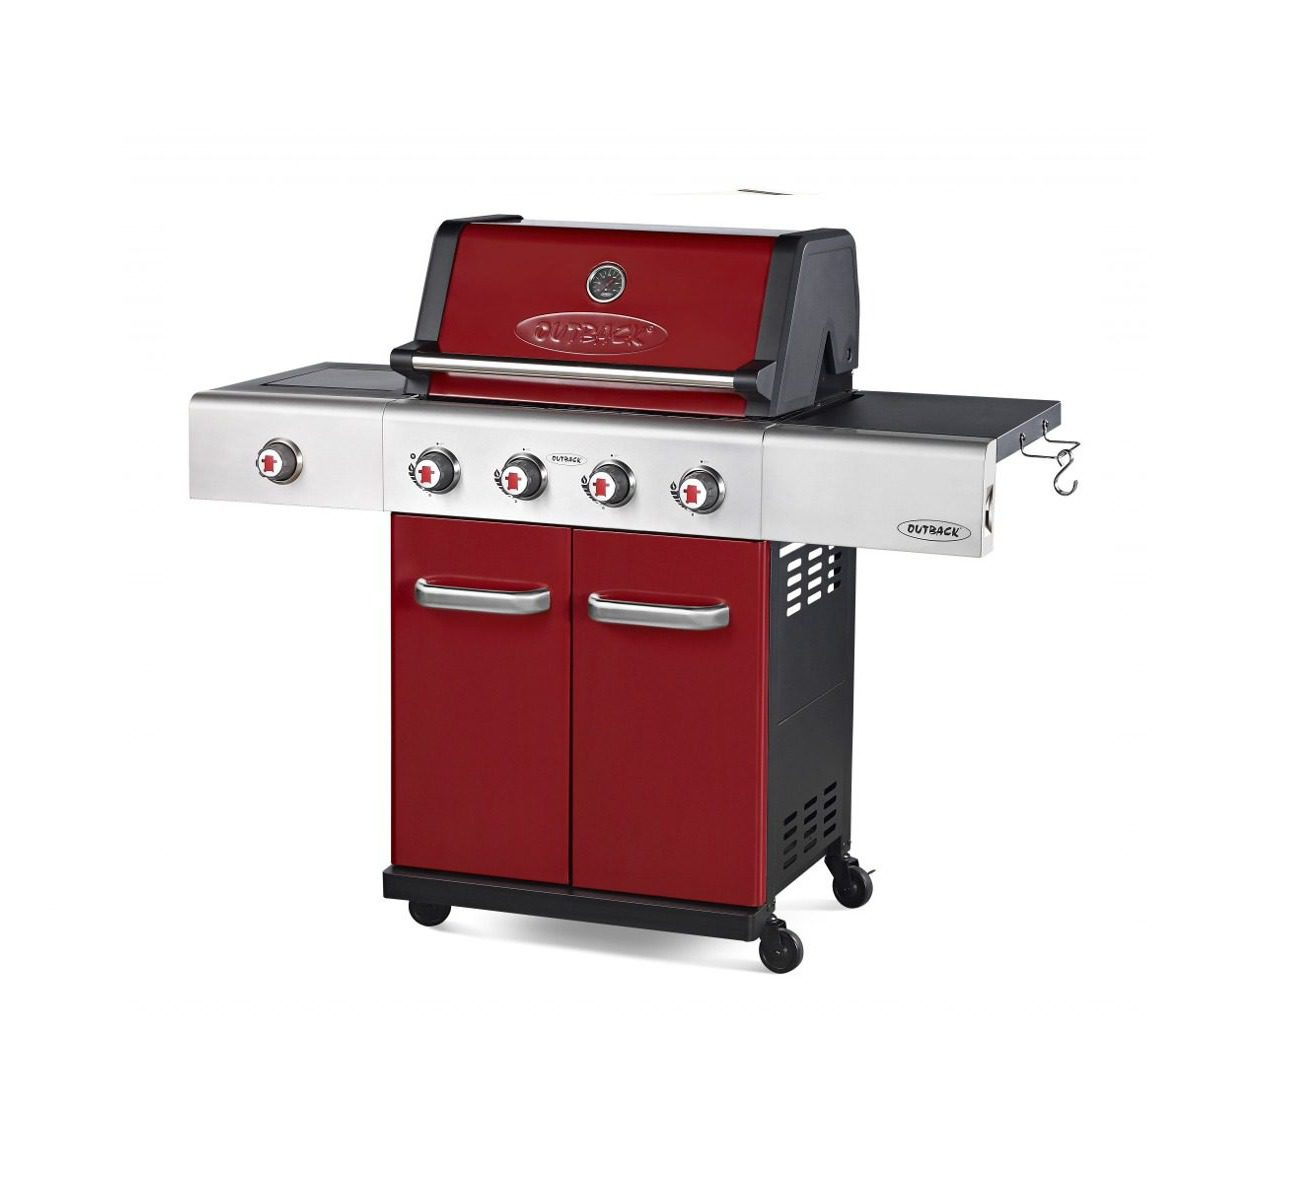 Outback Jupiter 4 Burner Barbecue Red